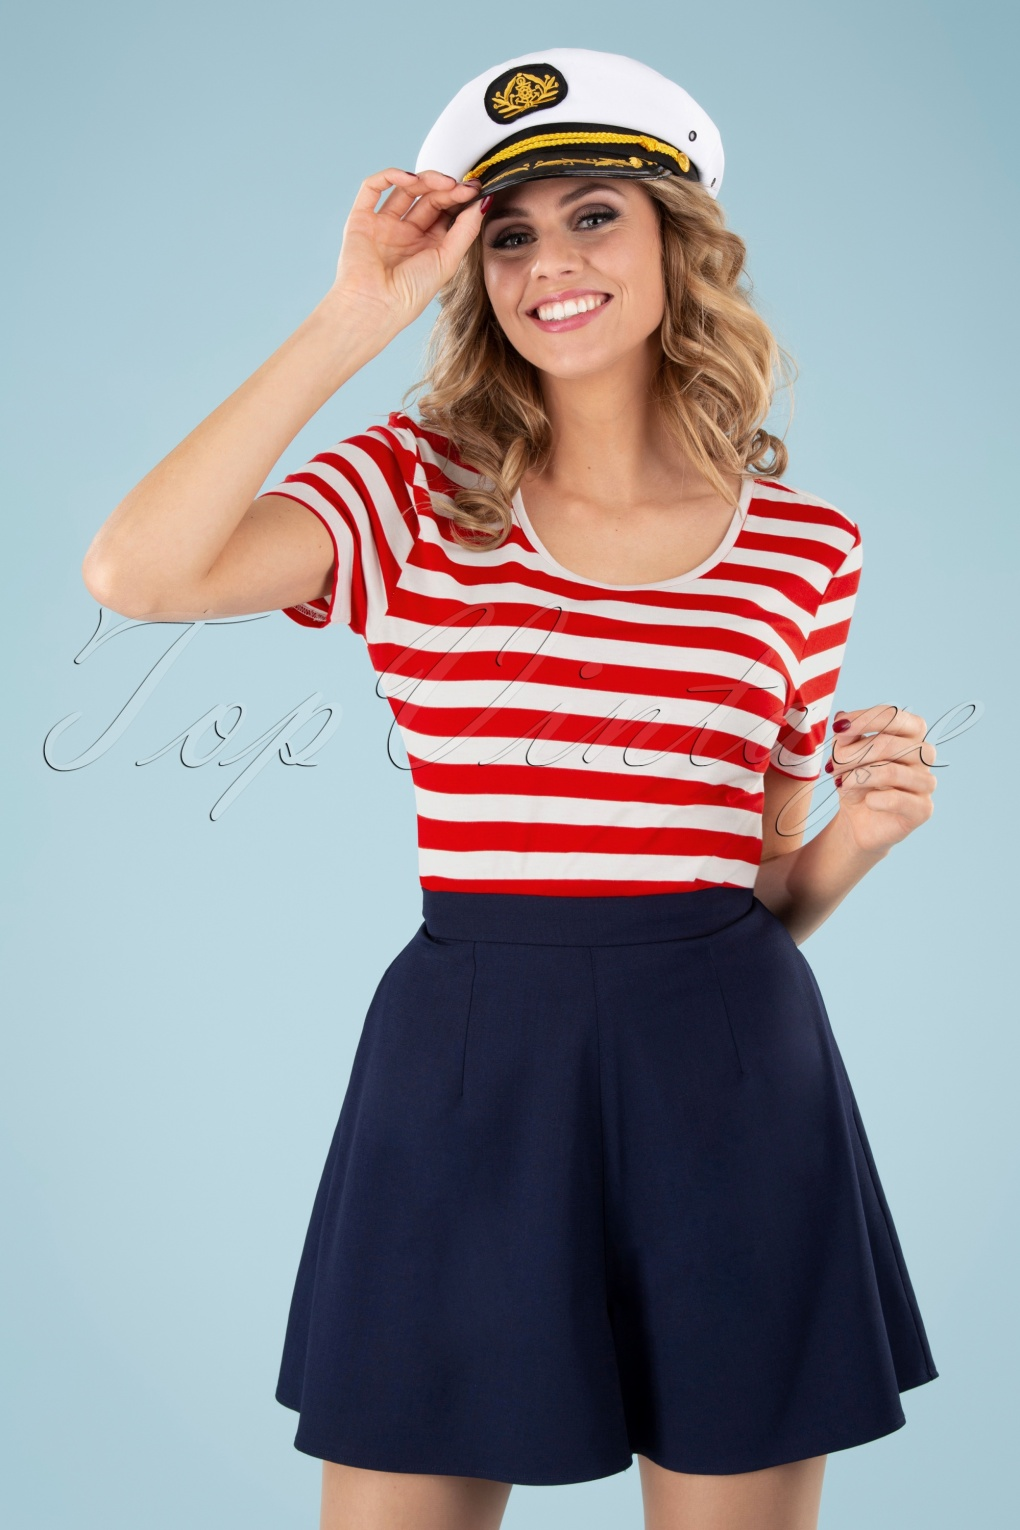 Vintage Tops & Retro Shirts, Halter Tops, Blouses 50s Land Ahoy Crop T-Shirt in Red and White £20.14 AT vintagedancer.com